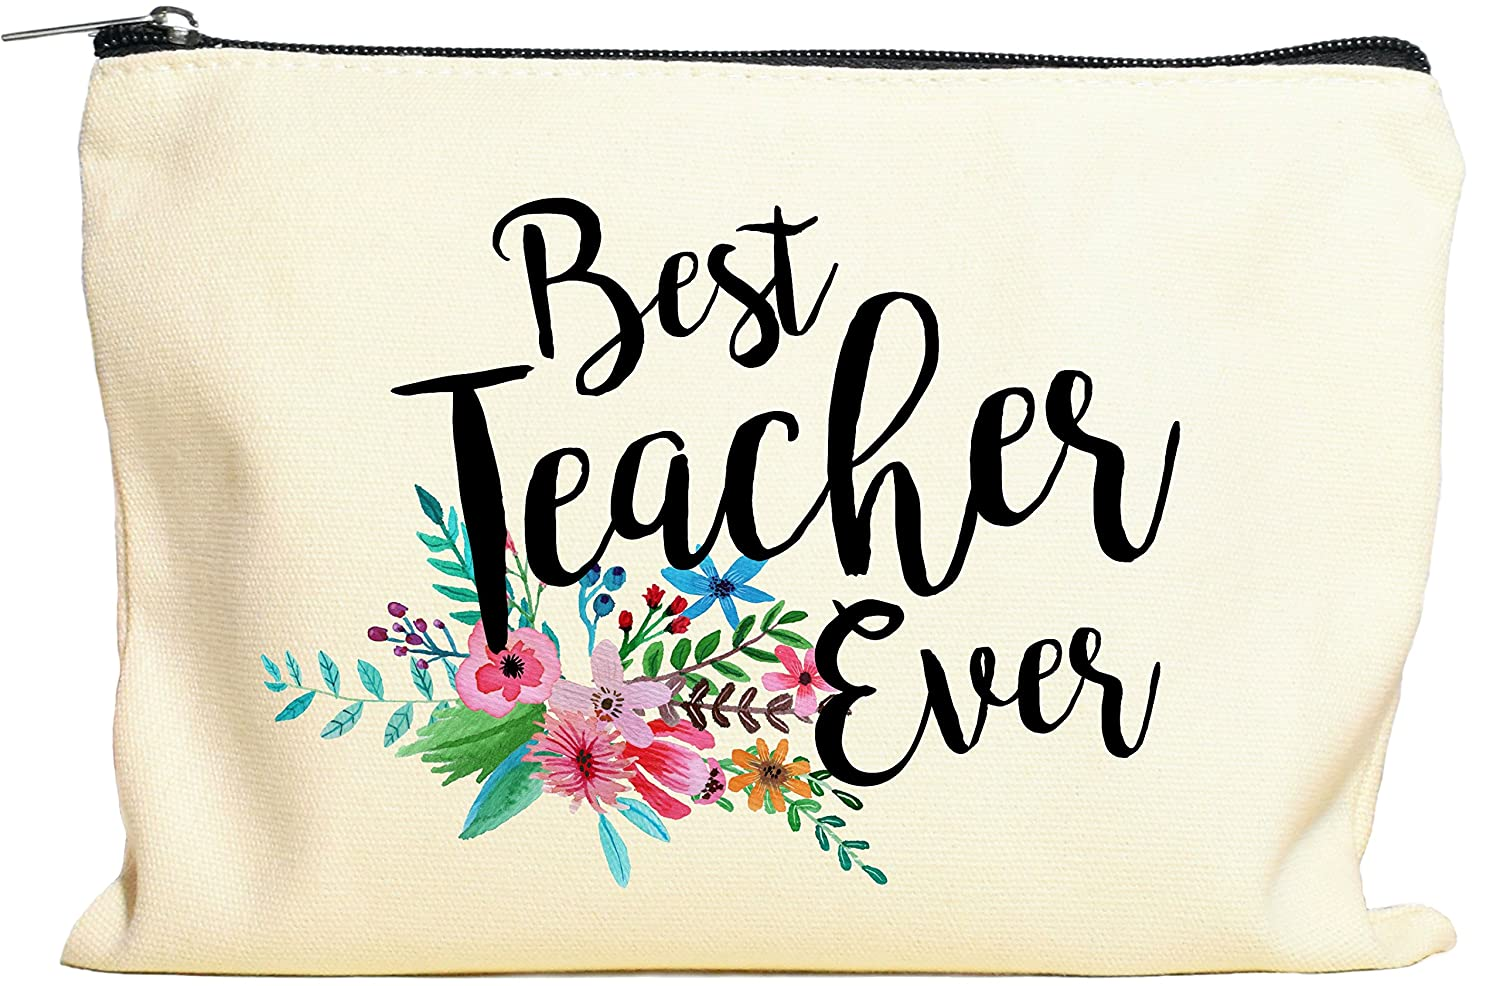 Teacher Gifts, Teacher Appreciation Gift, Best Teacher Ever, Makeup Bag, Pencil Case, Teacher Gift, Teacher Gifts For Women, Preschool, Elementary, High School, Teacher Pencil Bag Moonwake Designs Co